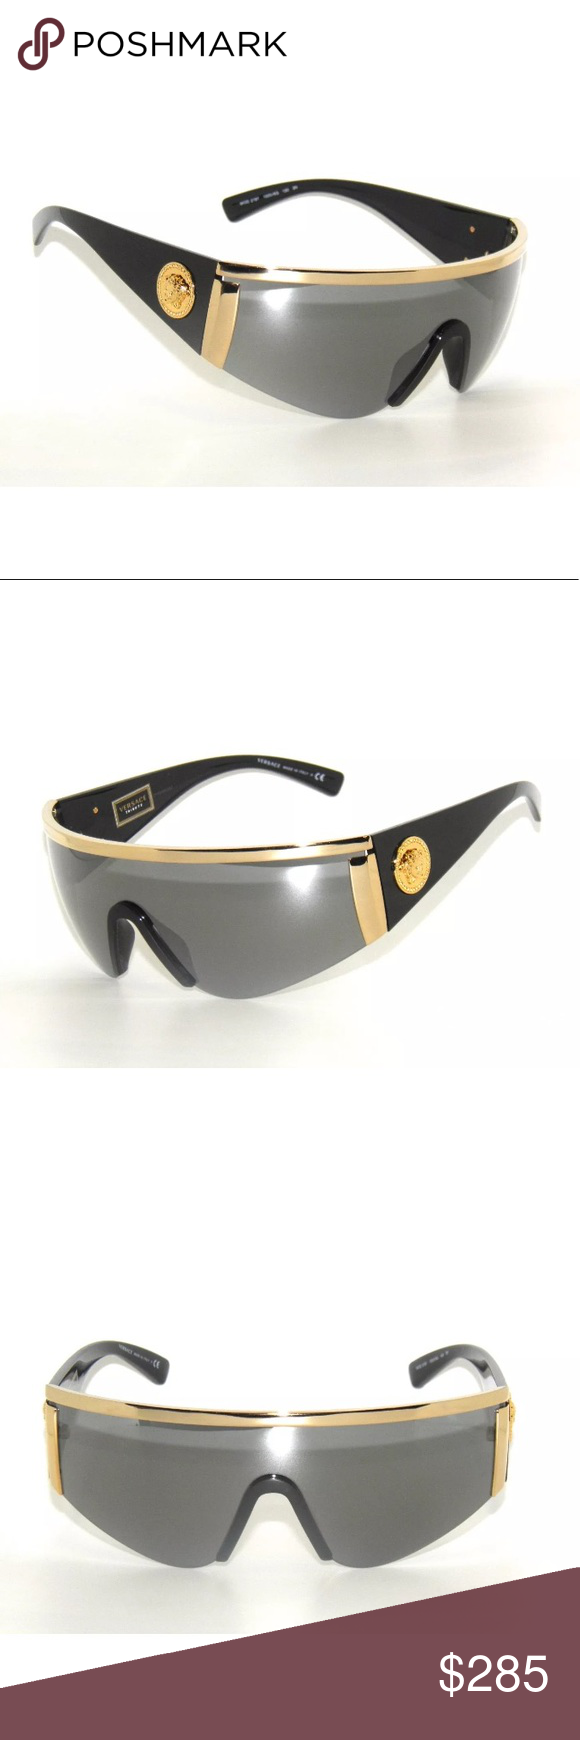 766999a9b24 Versace Sunglasses 2197 black and gold Brand New Comes with All accessories  Authentic Versace Accessories Sunglasses